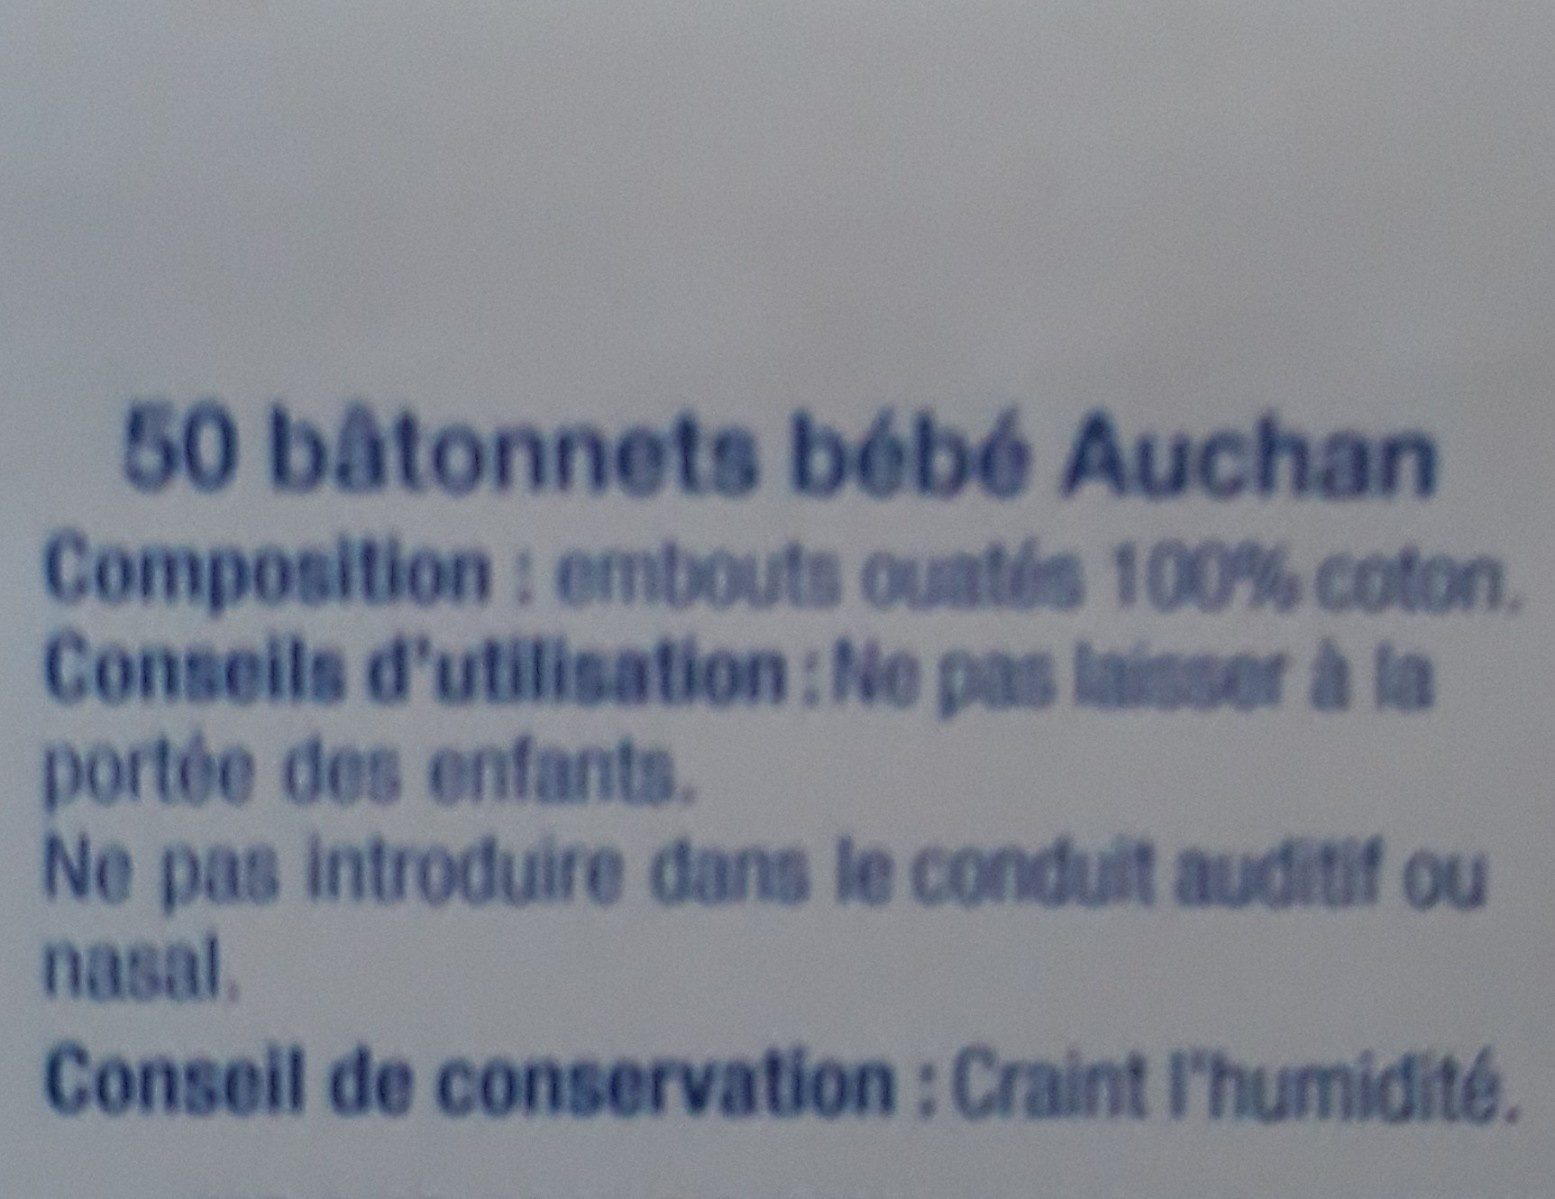 Auchan Batonnets Baby X50 - Ingredients